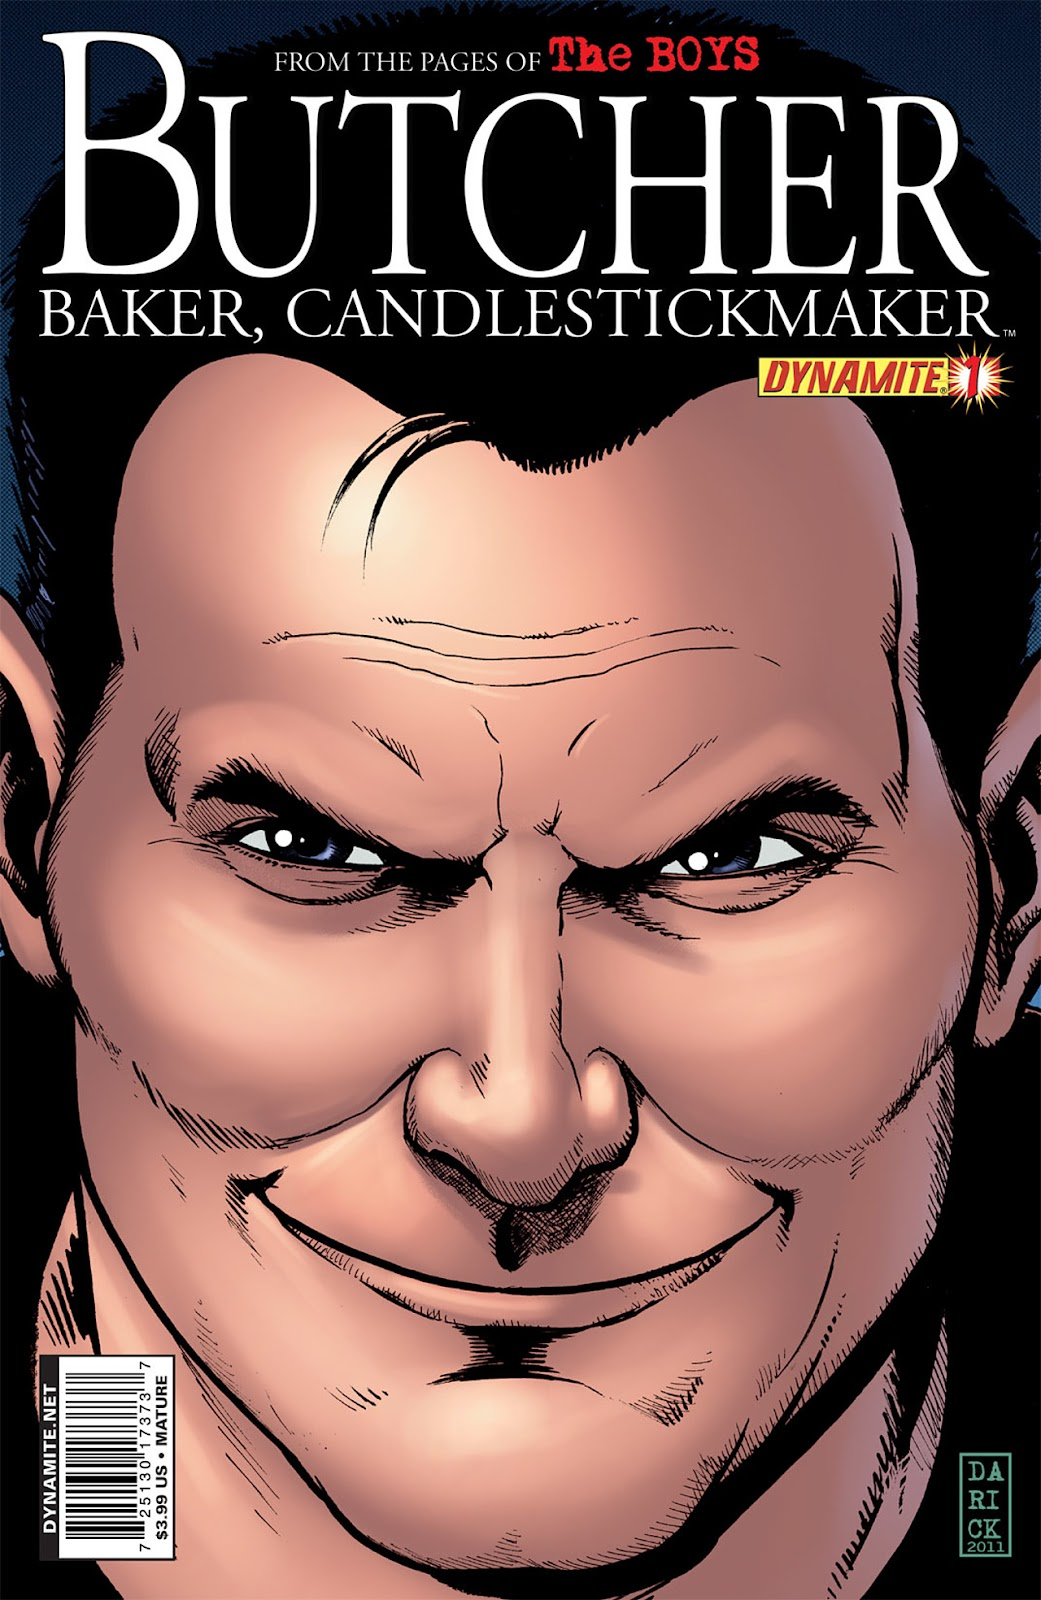 Read online The Boys: Butcher, Baker, Candlestickmaker comic -  Issue #1 - 1